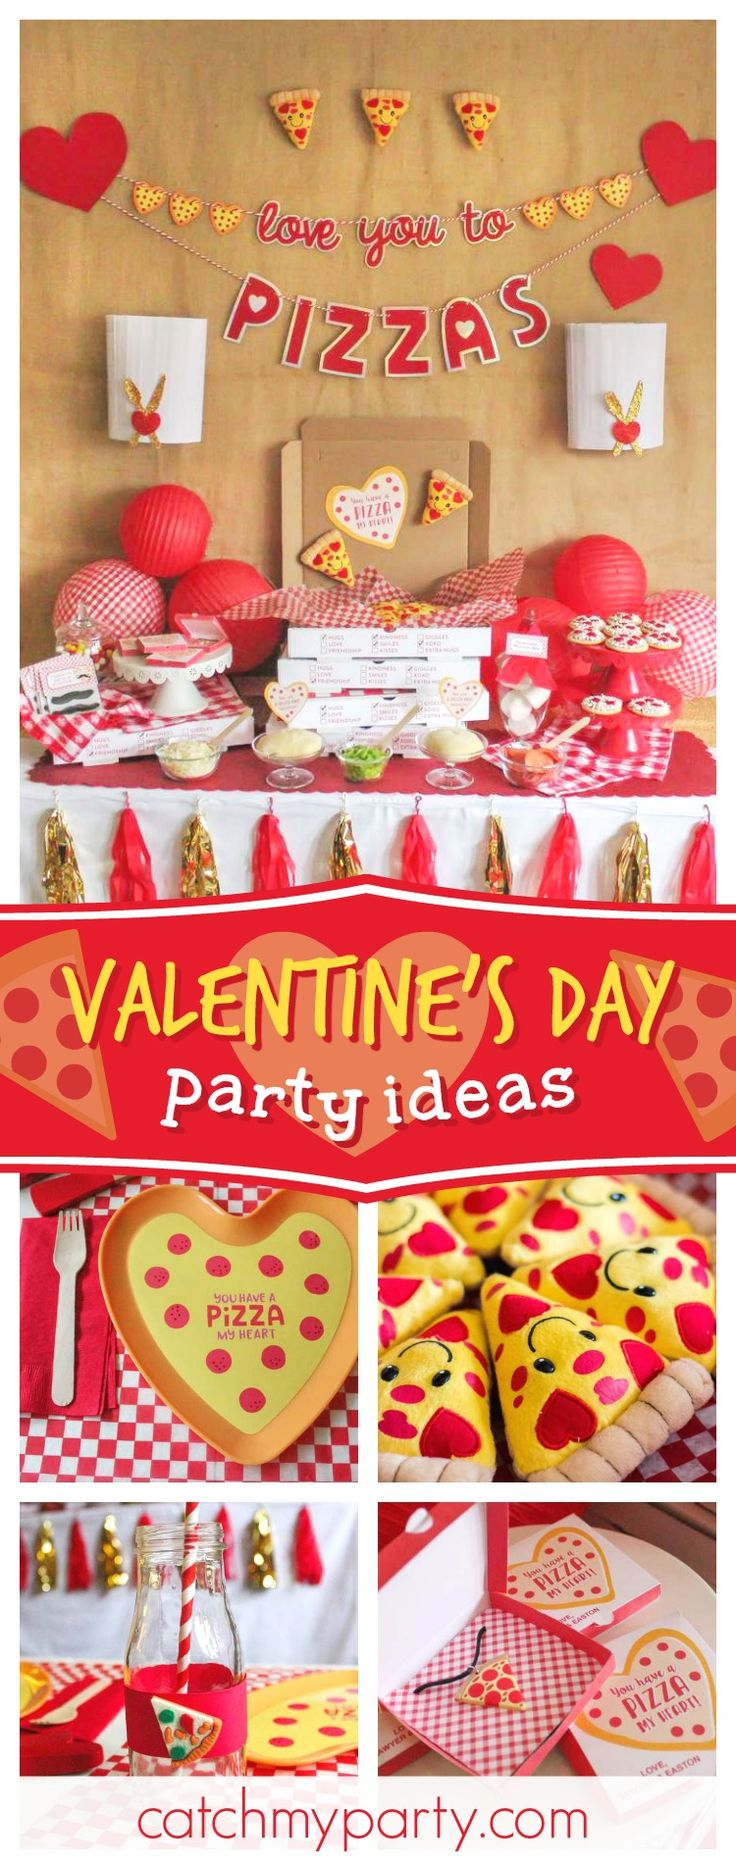 Tell someone you love them with a slice of pizza! Check out the cool dessert table at this pizza themed Valentine's Day party!! See more party ideas and share yours at CatchMyParty.com #partyideas #valentinesday #pizza